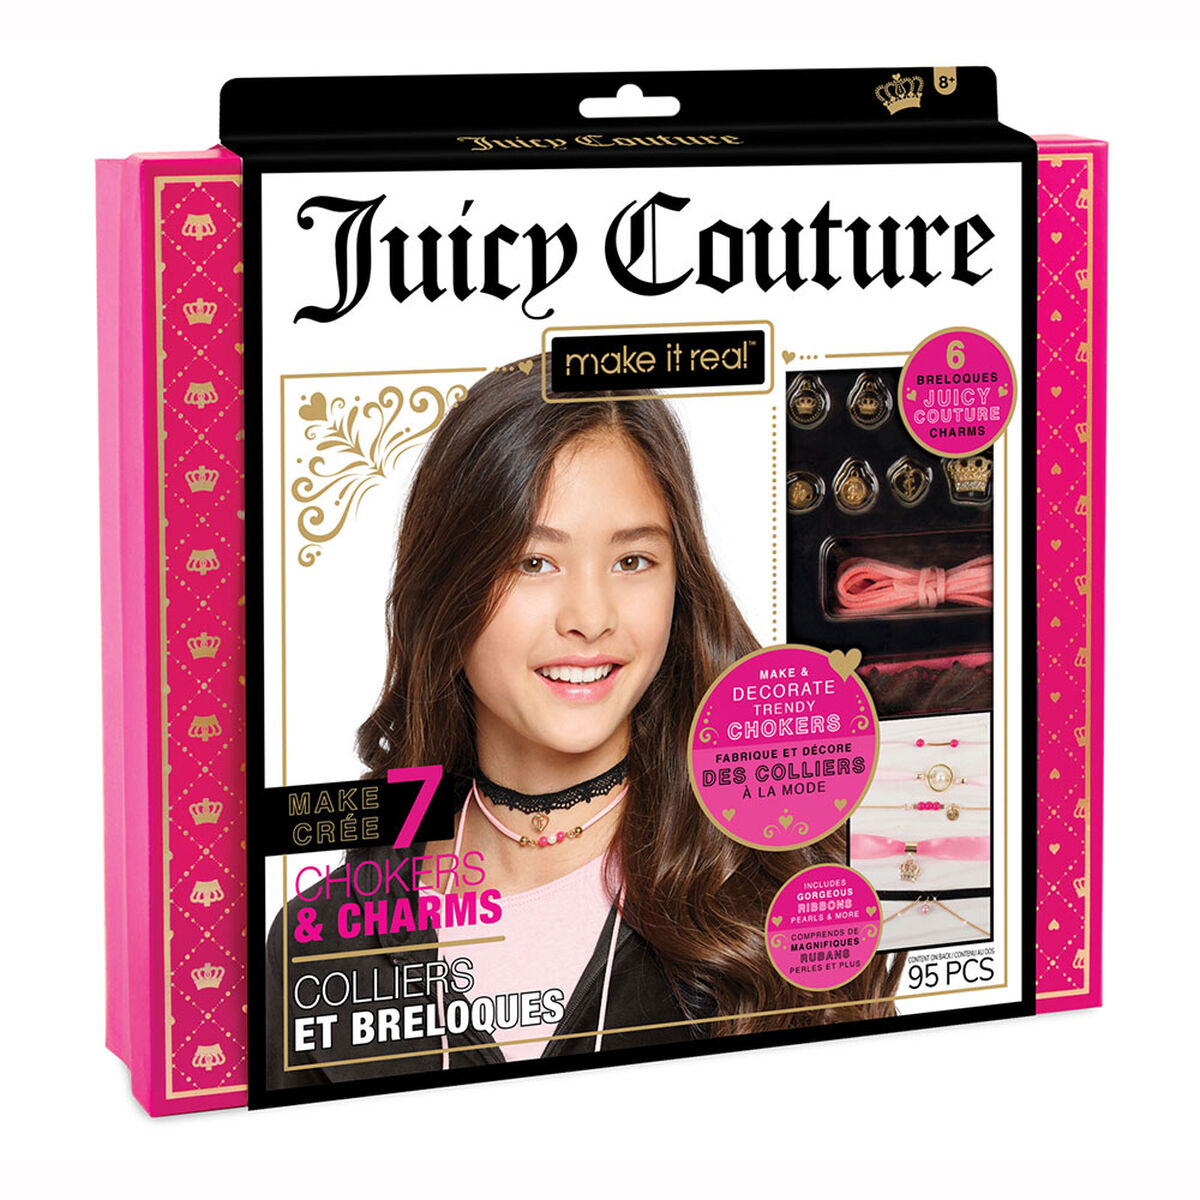 Set Juicy Couture Charms